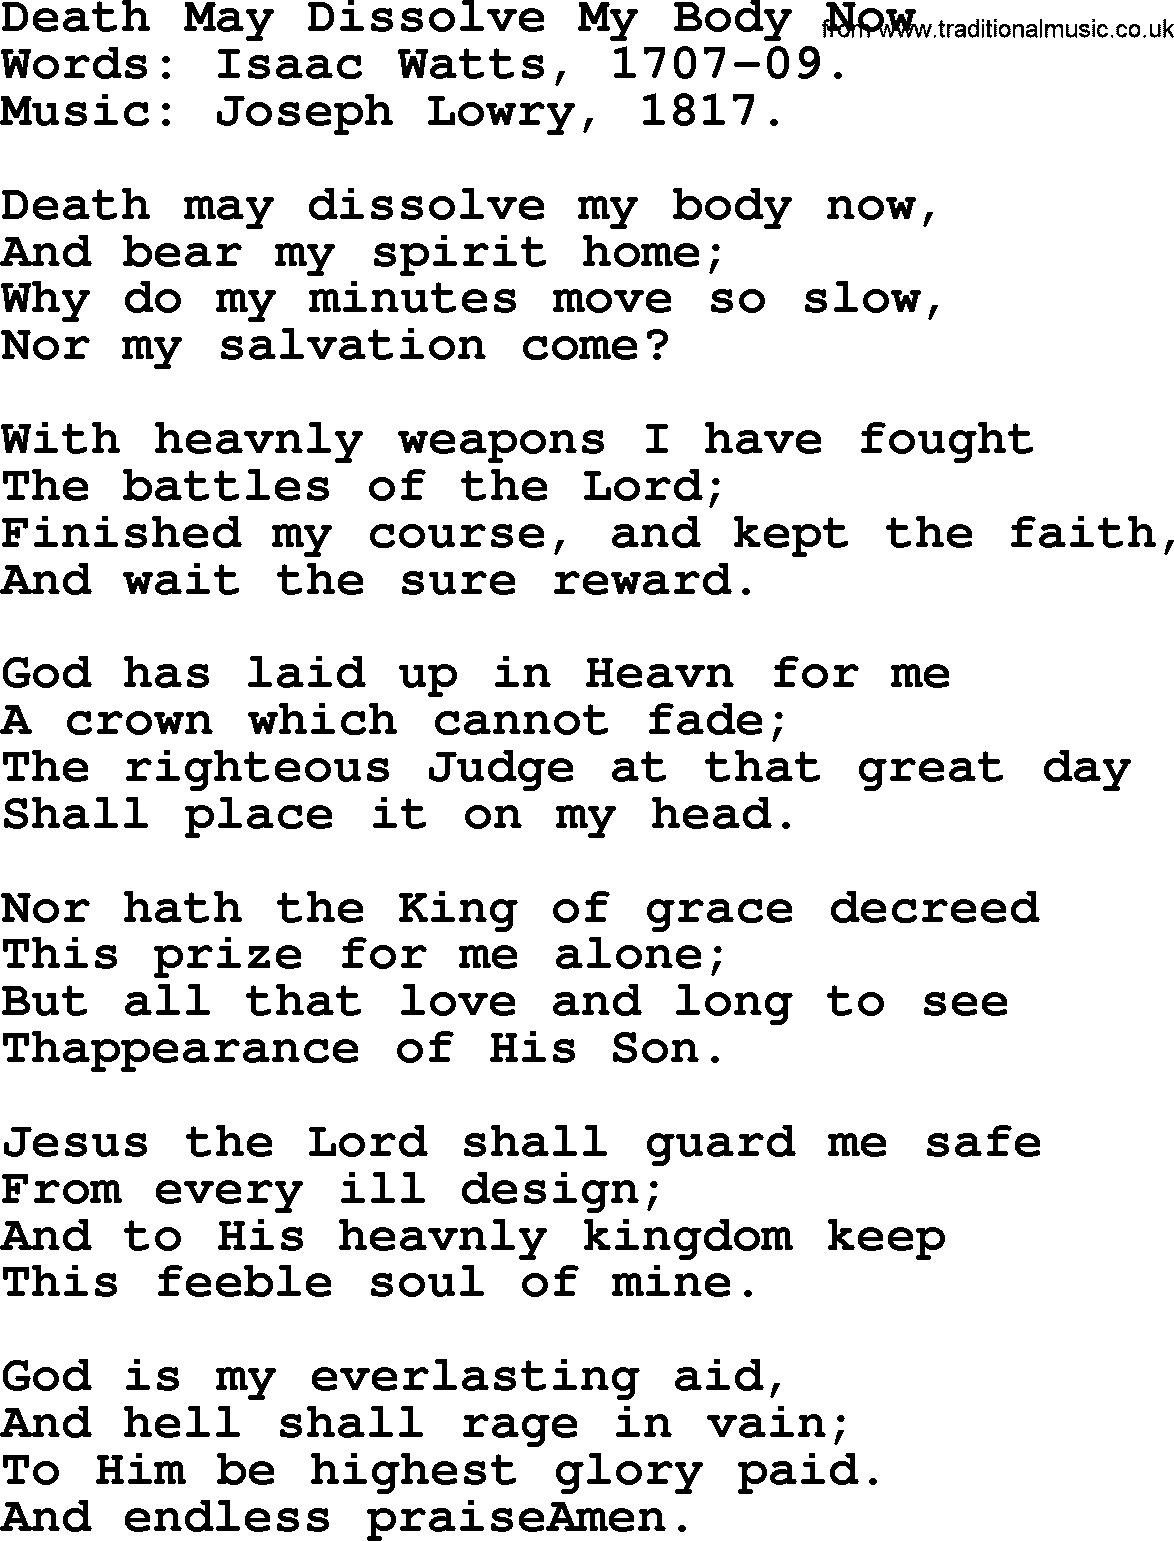 Death May Dissolve My Body Now, by Isaac Watts - Christian